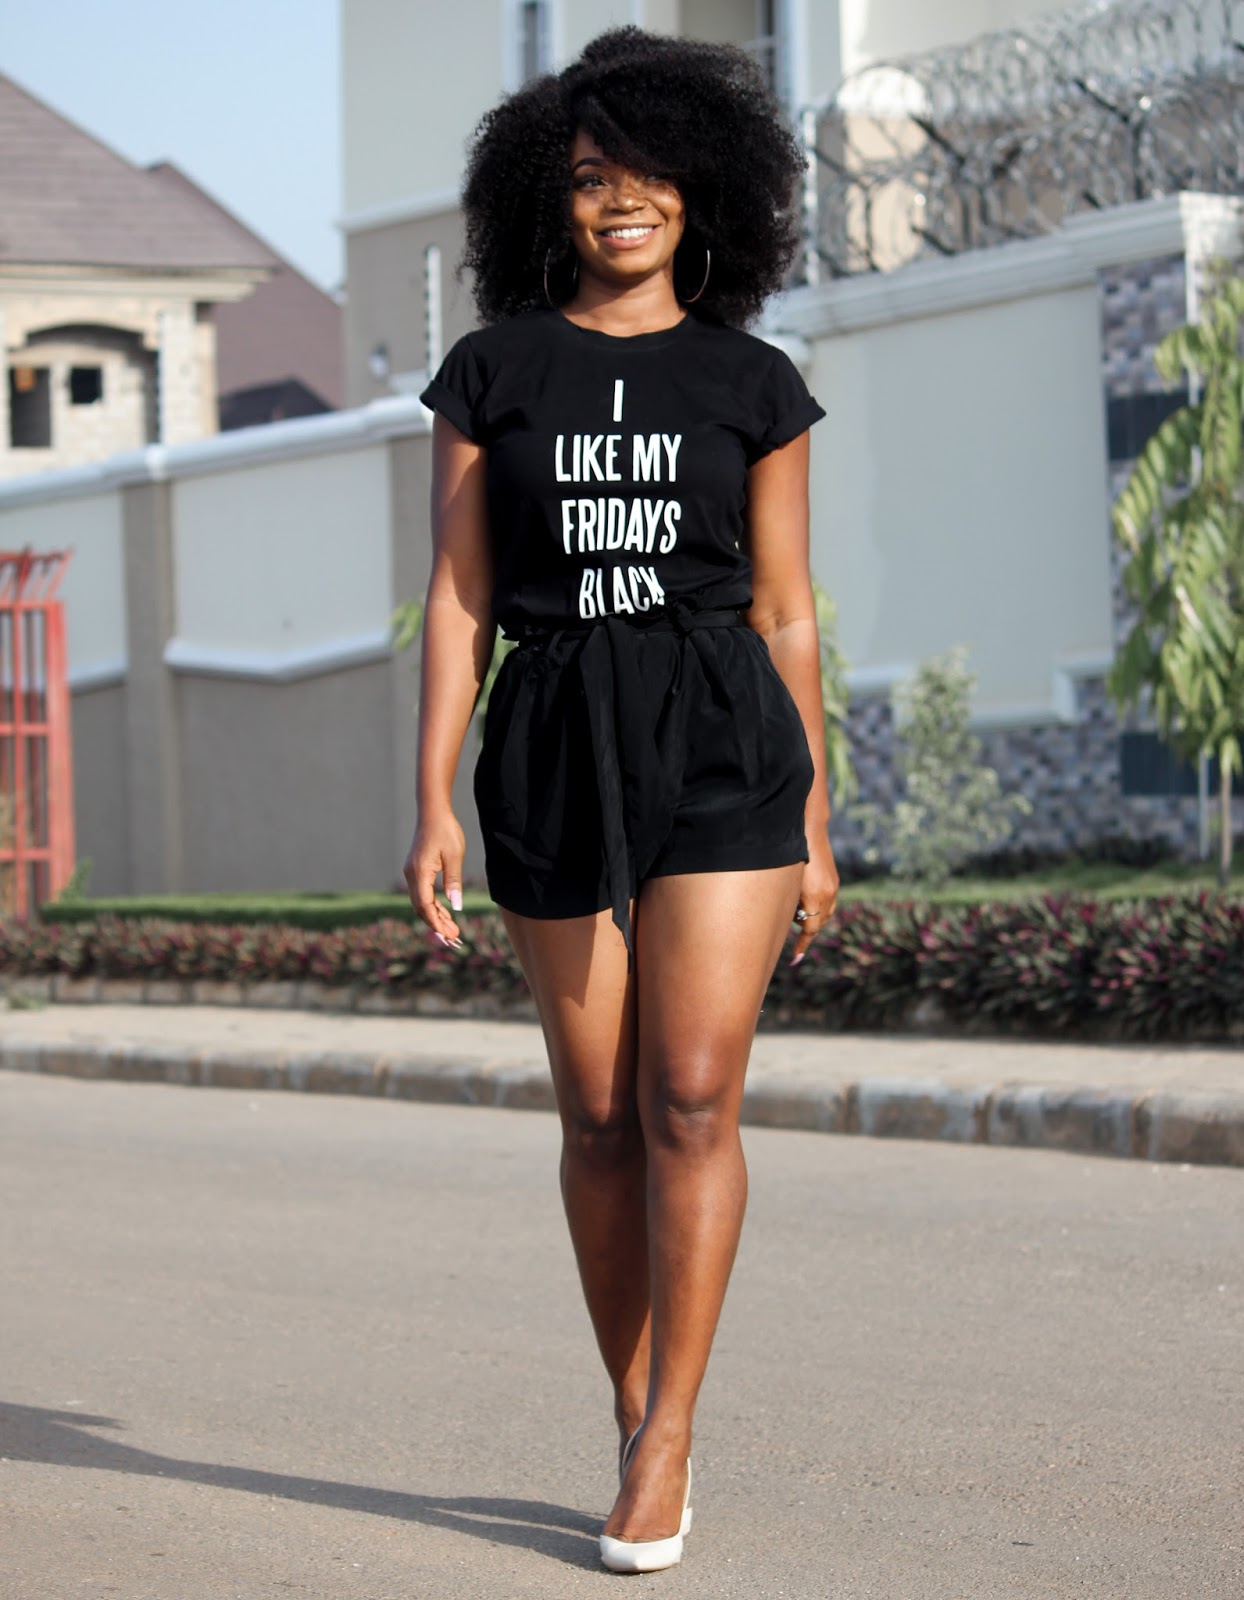 I LIKE MY FRIDAYS BLACK - JustPorshxJumia Black Friday Collaboration & Giveaway